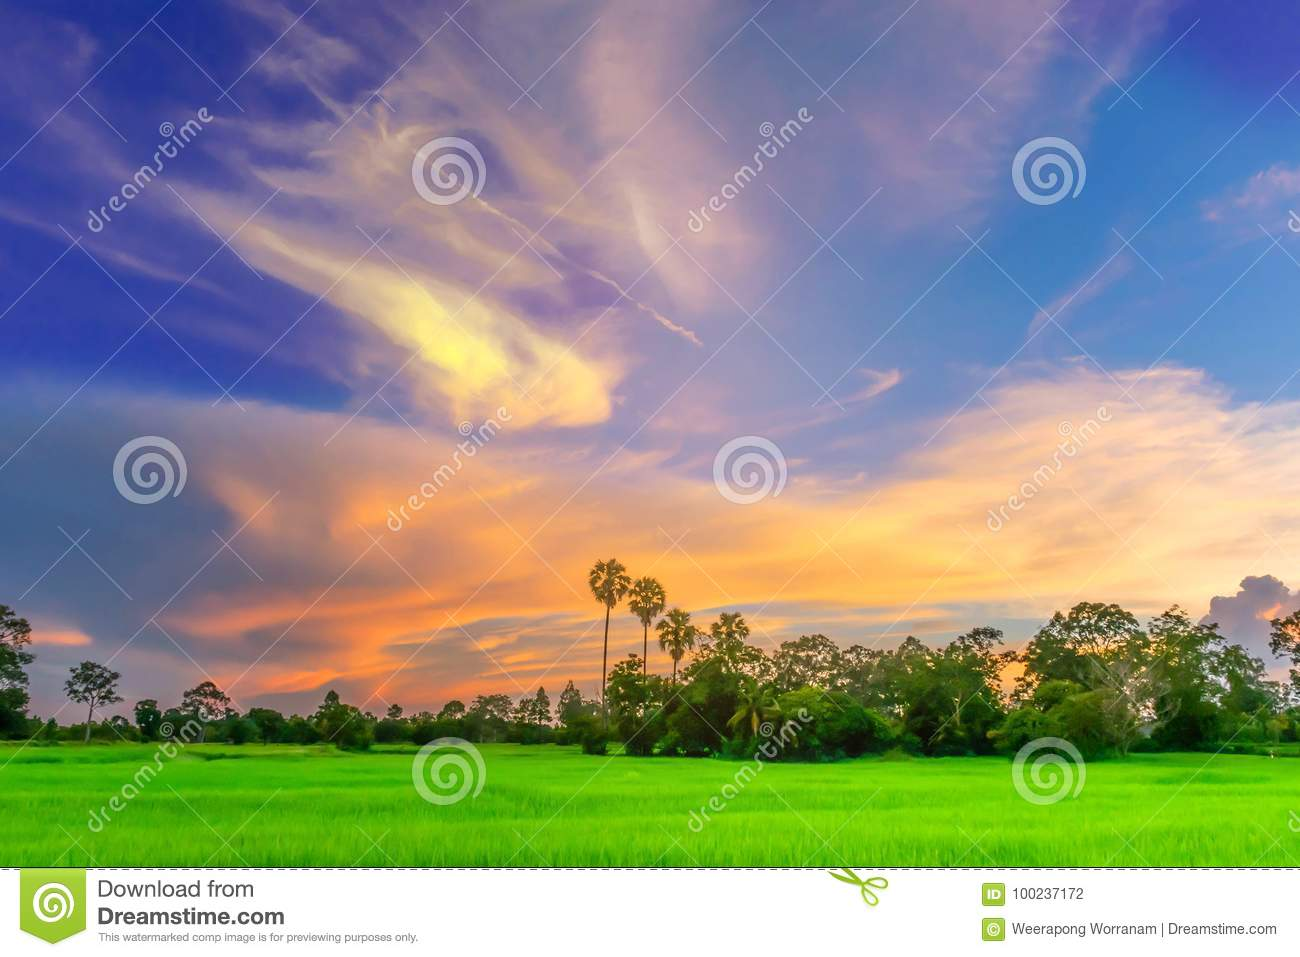 Abstract soft blurred and soft focus silhouette of the sunset with the green paddy rice field, the beautiful sky and cloud in the